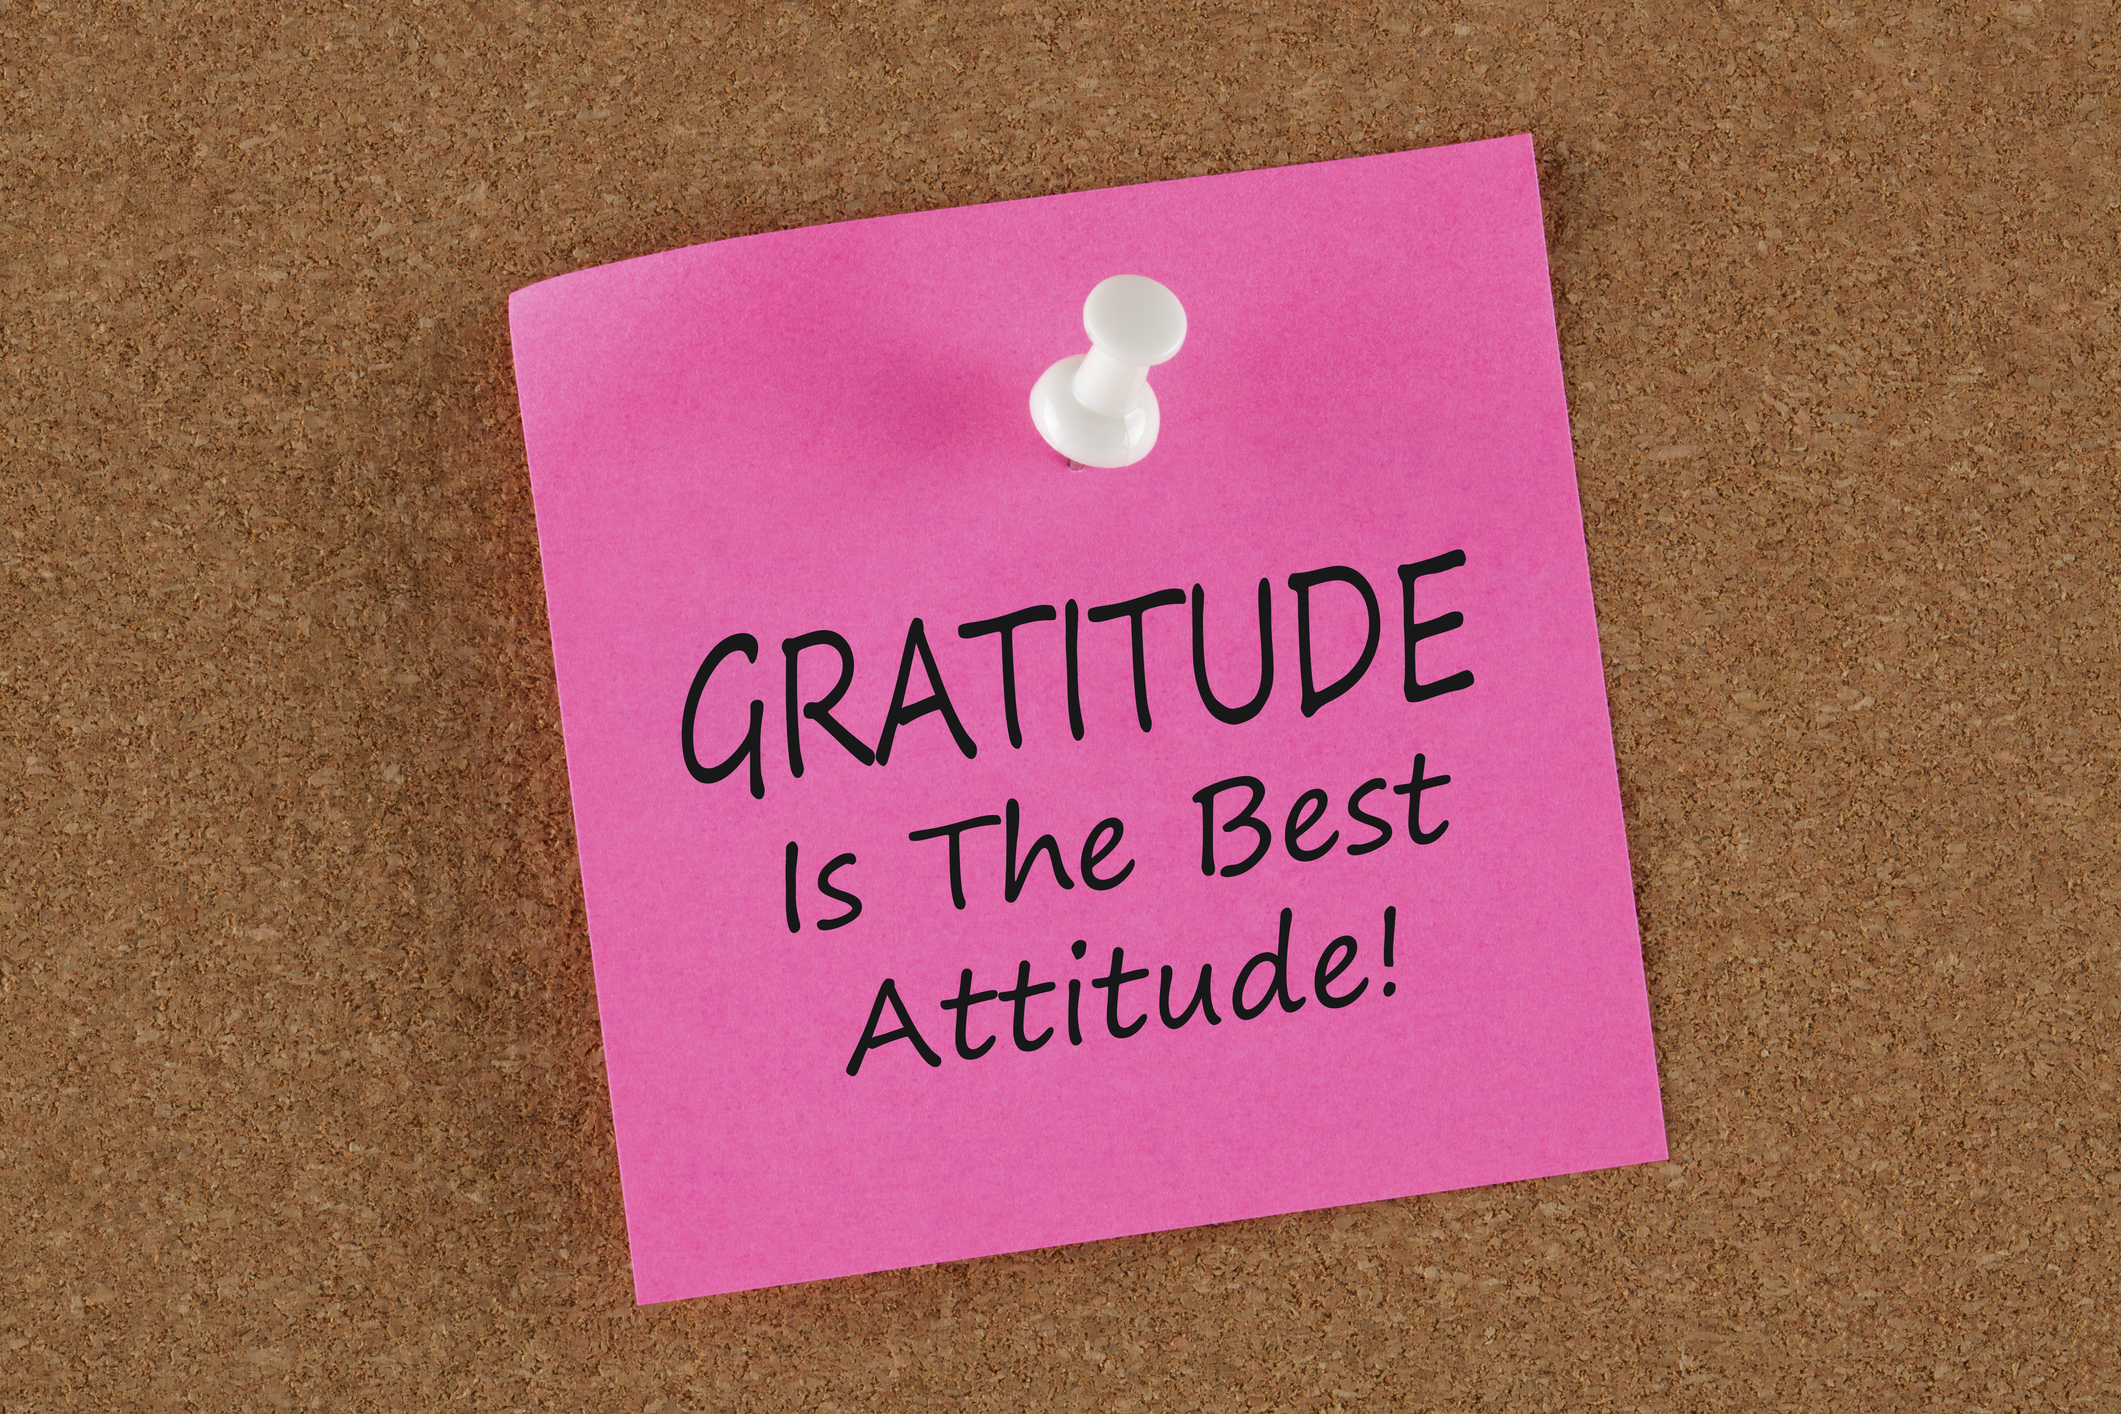 Time to Add Gratitude to a Beautiful Life—And Your Company's Culture!